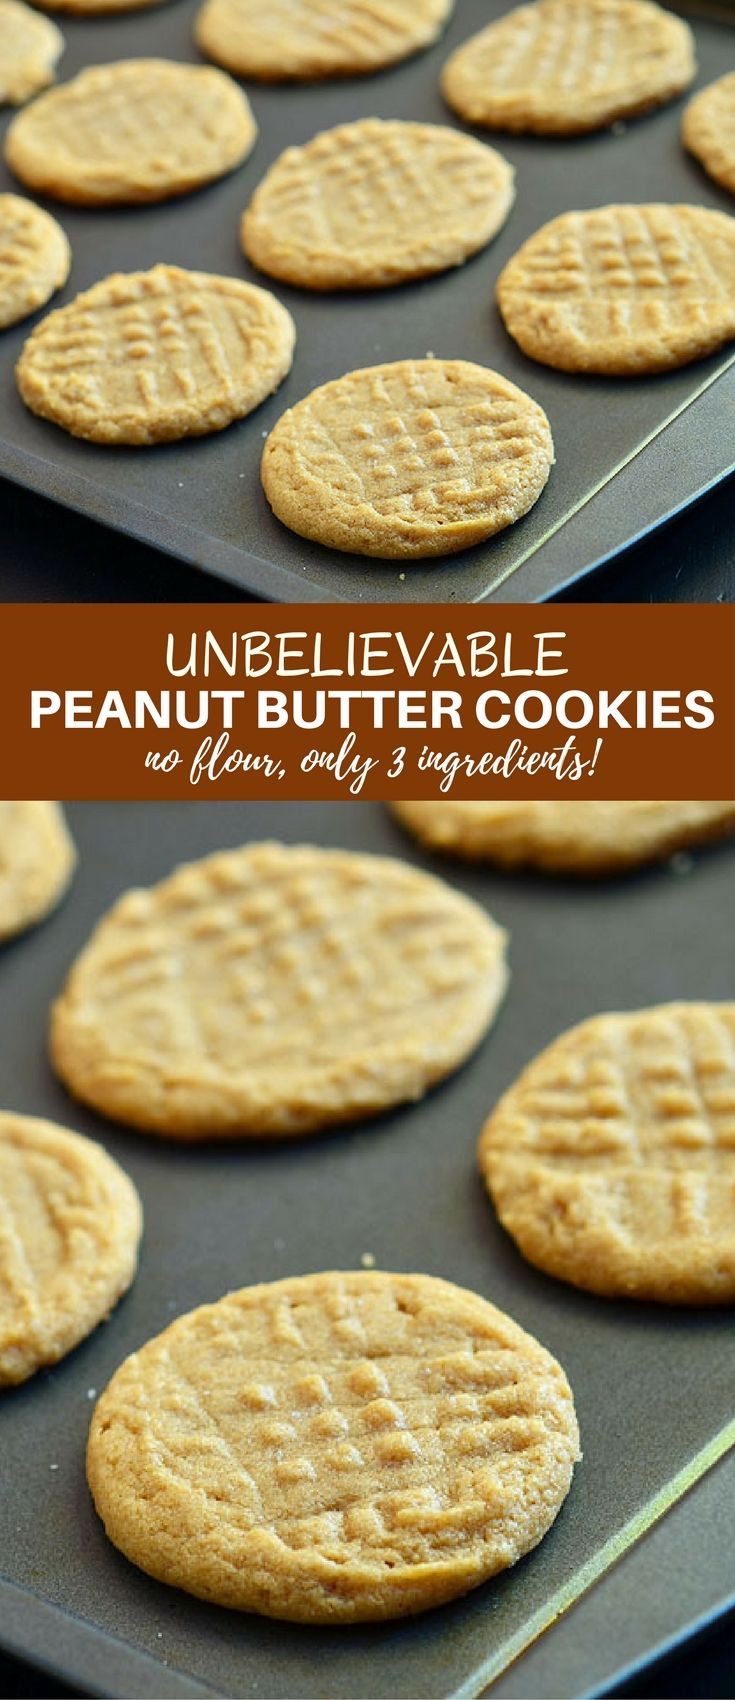 Unbelievable Three Ingredient Peanut Butter Cookies are so easy to make with only three ingredients and NO flour. With an intense peanut butter flavor, these gluten-free cookies are absolutely delicious! via @lalainespins